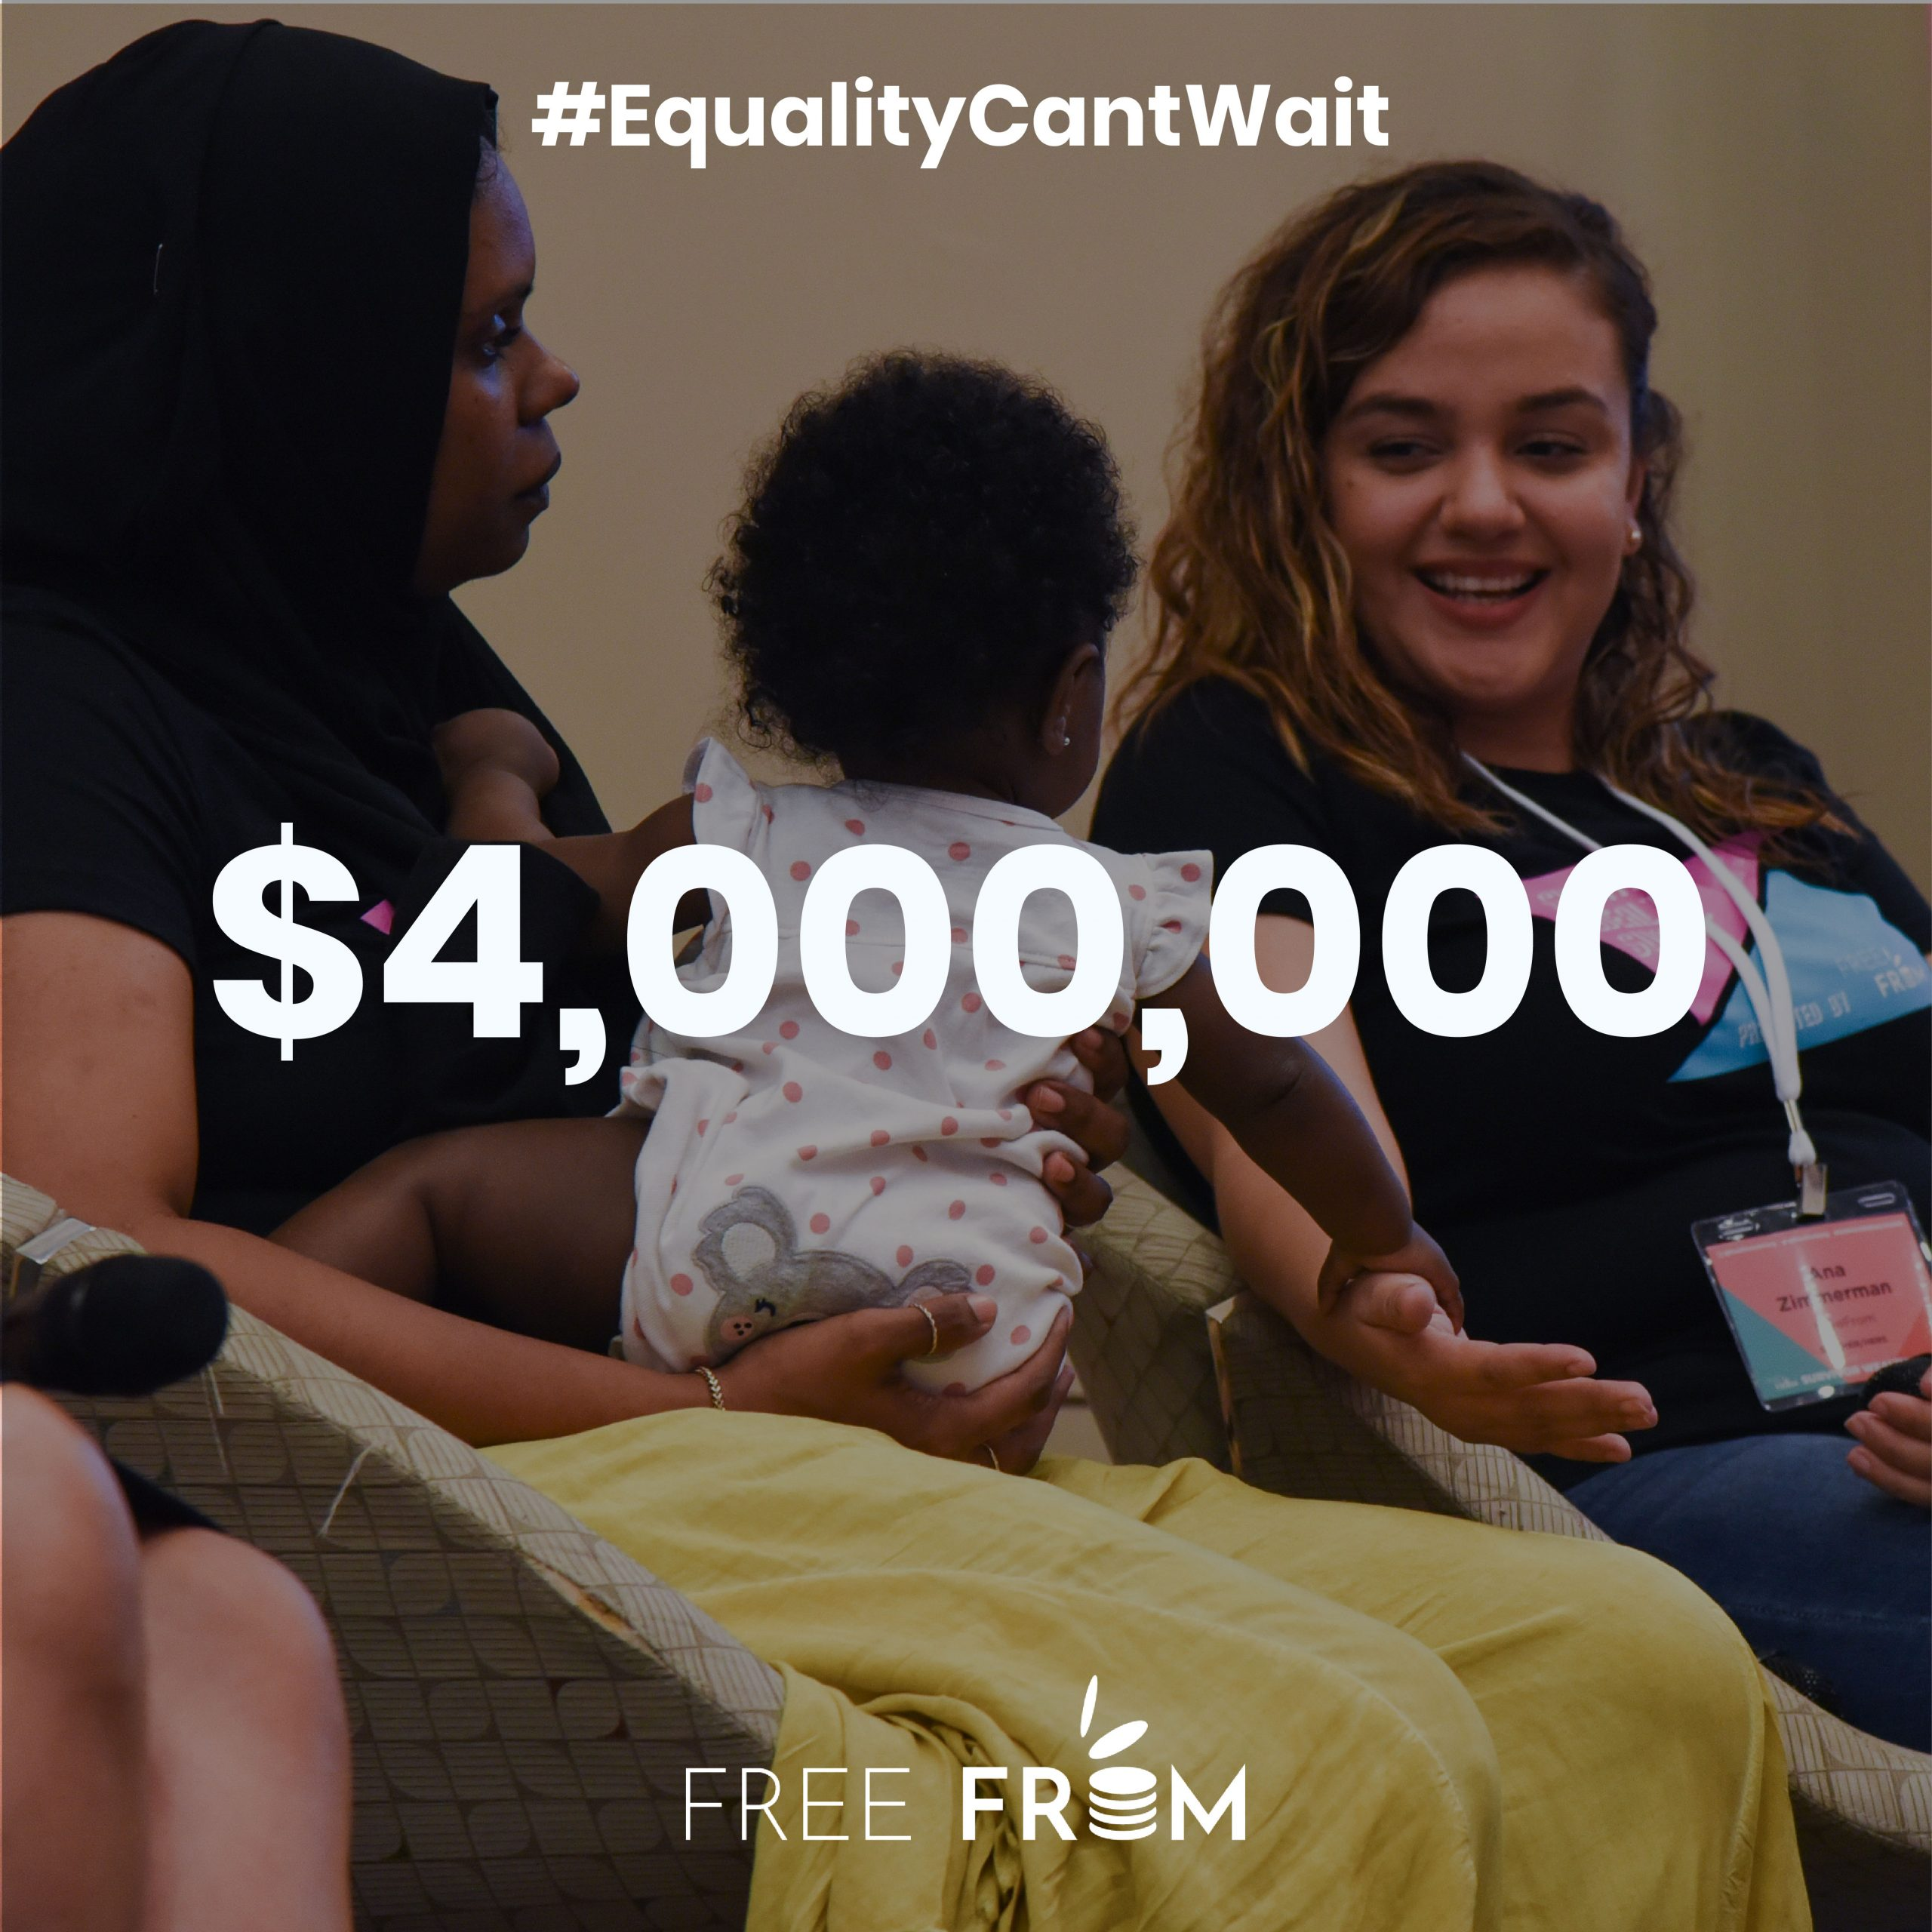 FreeFrom is awarded $4MM from the Equality Can't Wait Challenge